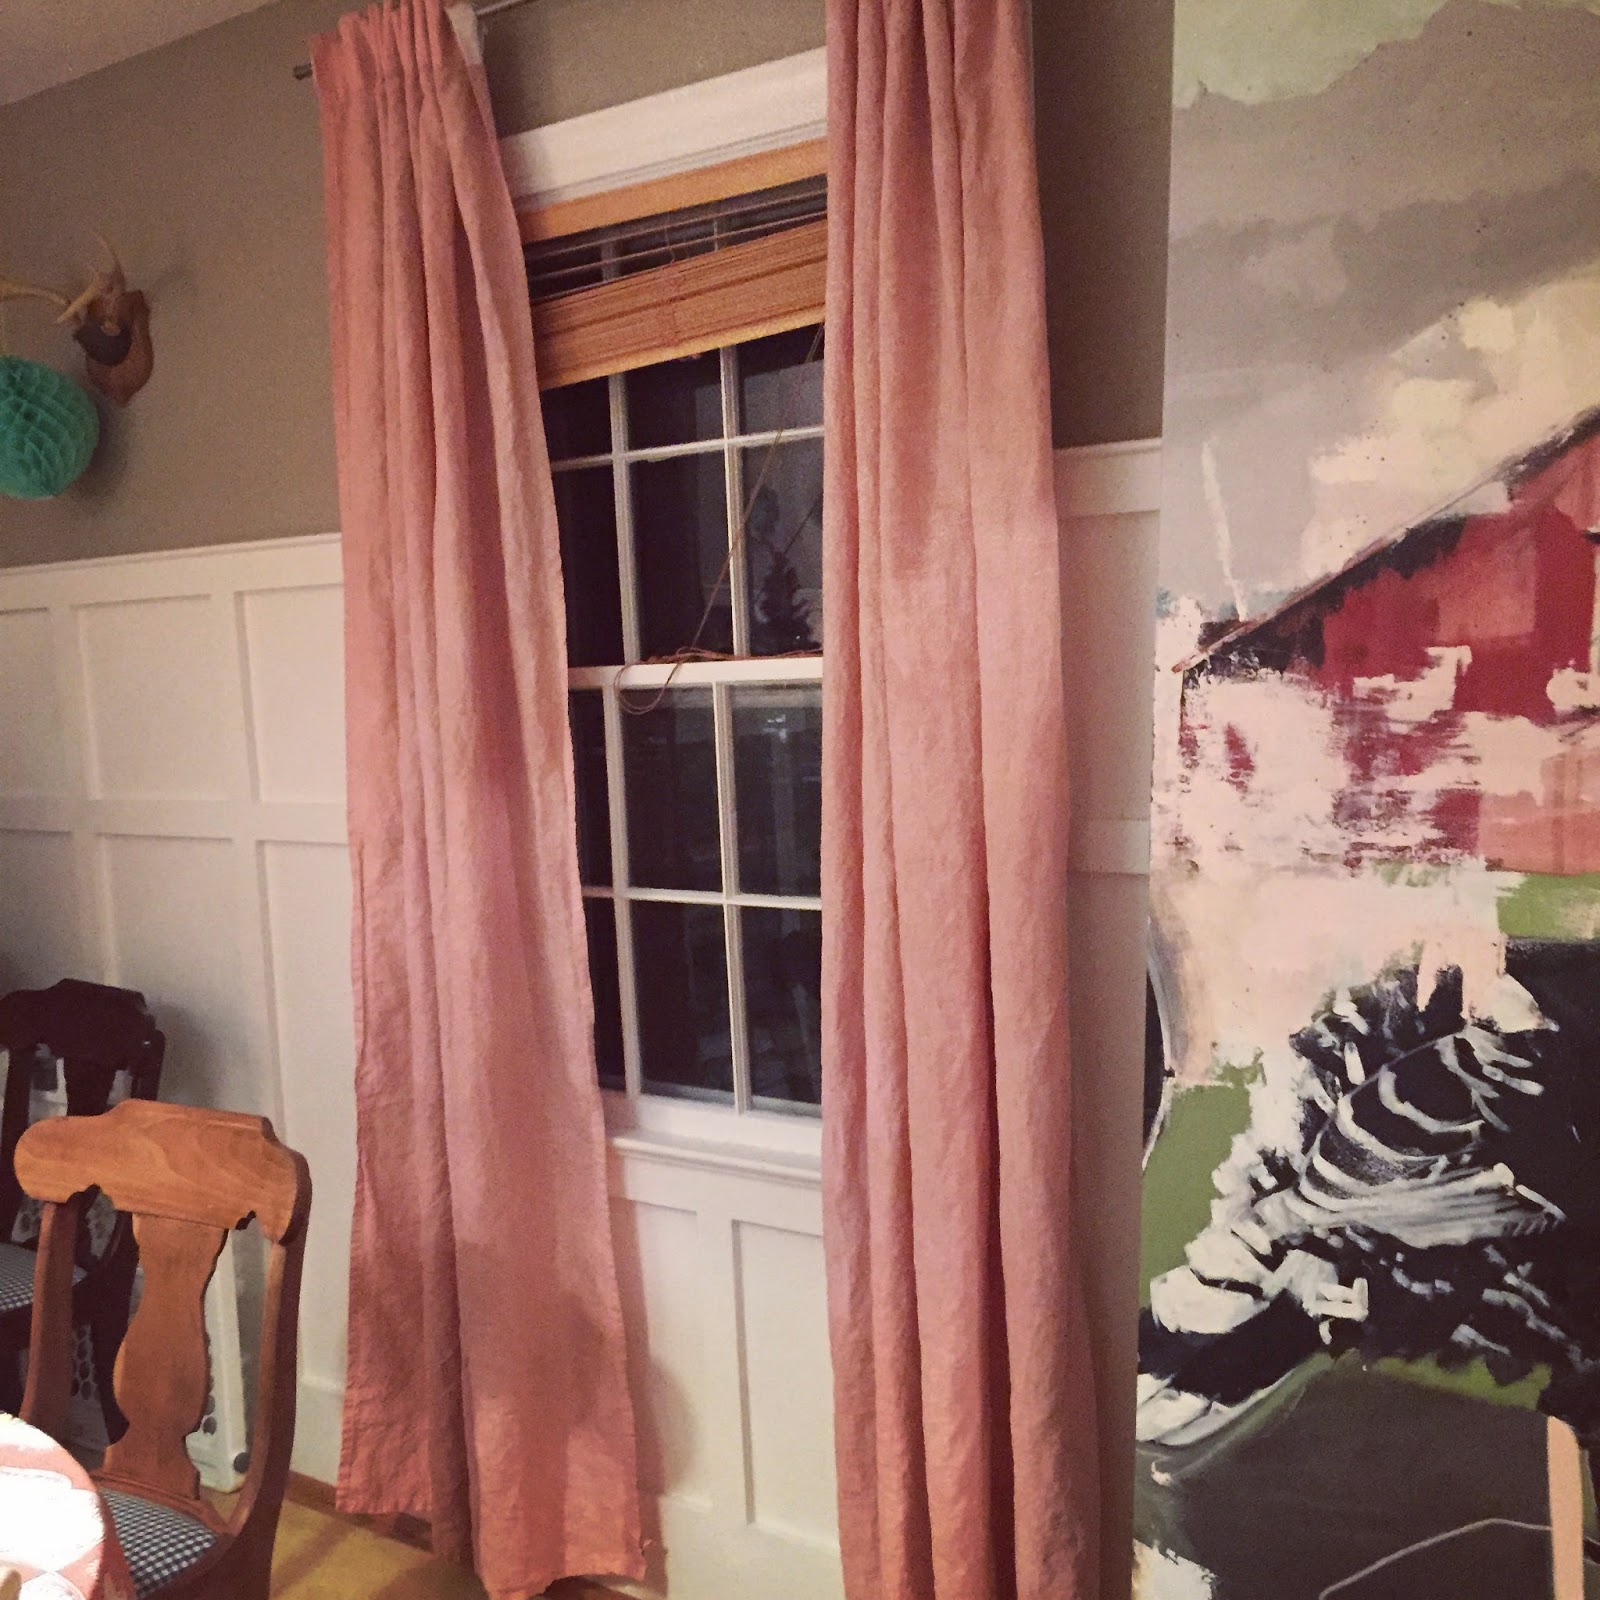 Tiptoethrough diy dyed dinging room curtains here are the curtains the night following their dye day i simply followed the dye instructions but let the curtains soak for extra time just to be sure nvjuhfo Images